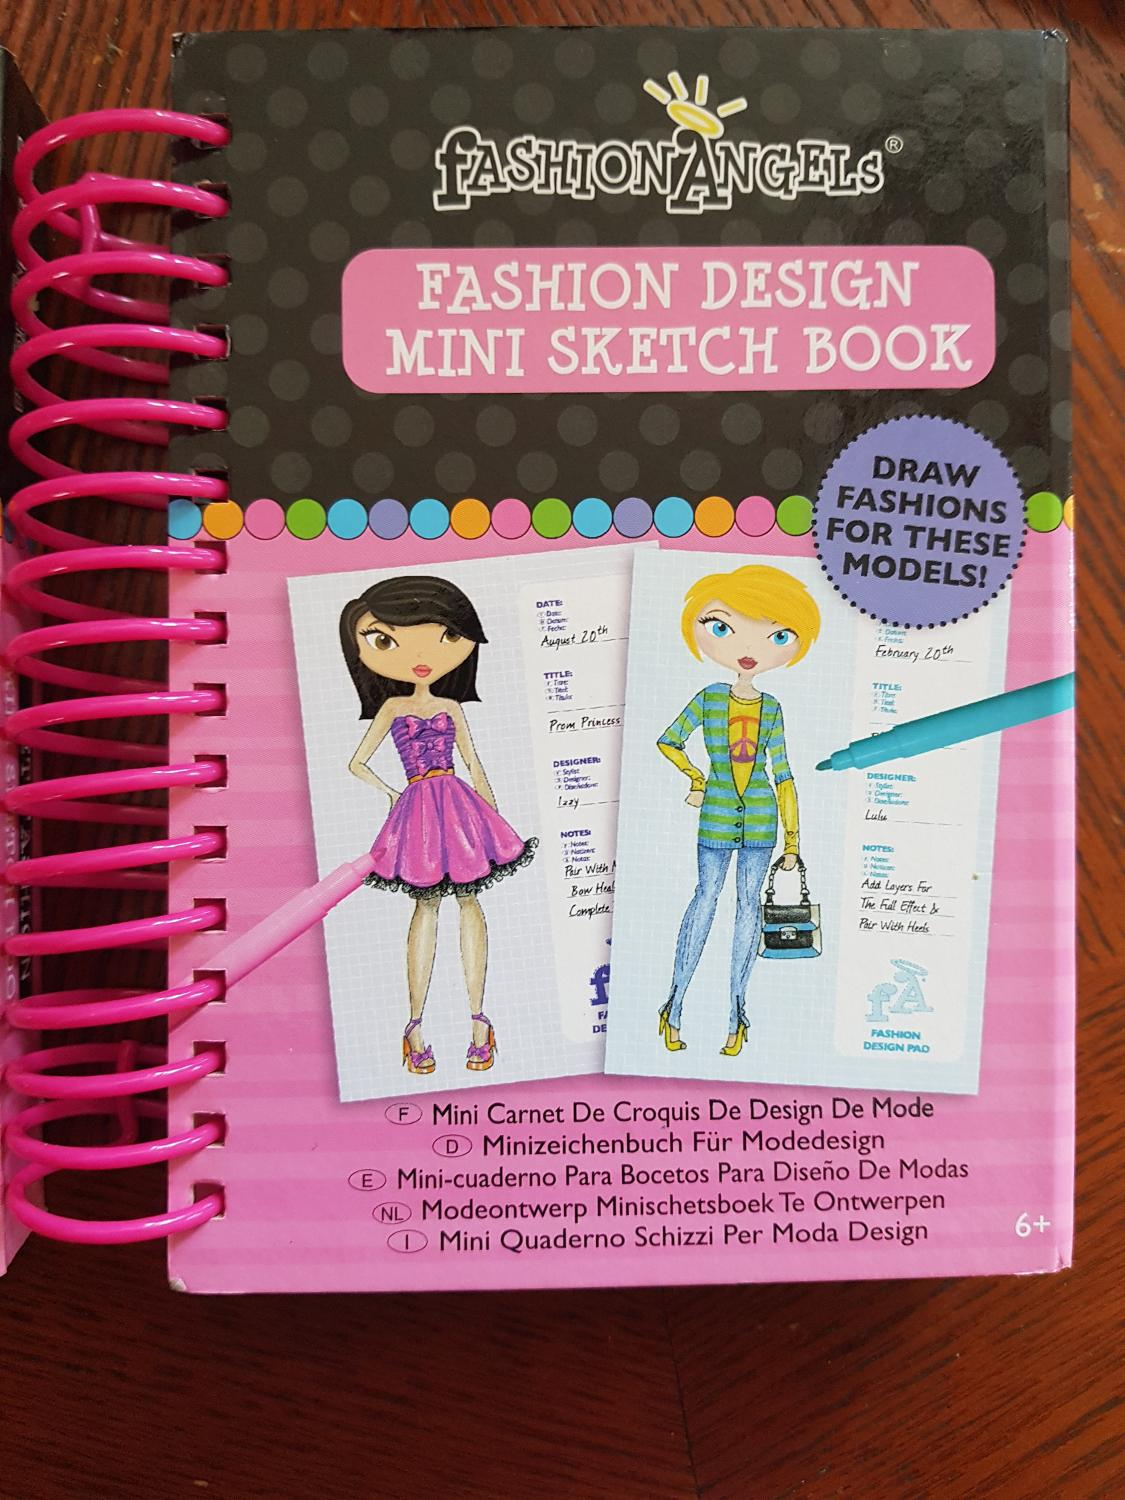 Best Fashion Design Mini Sketchbook For Sale In Oshawa Ontario For 2020